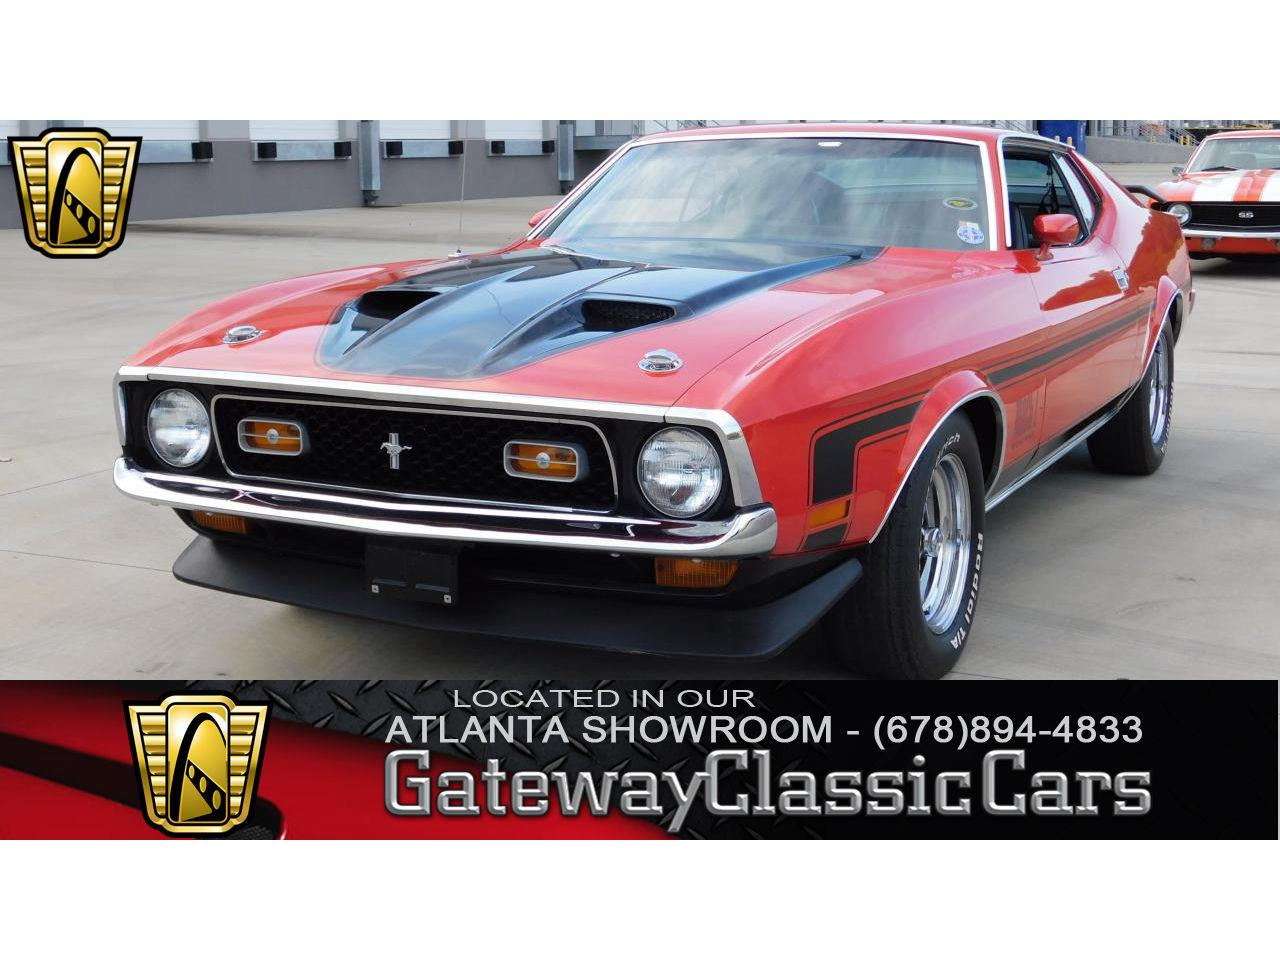 Large picture of 72 mustang ofoe